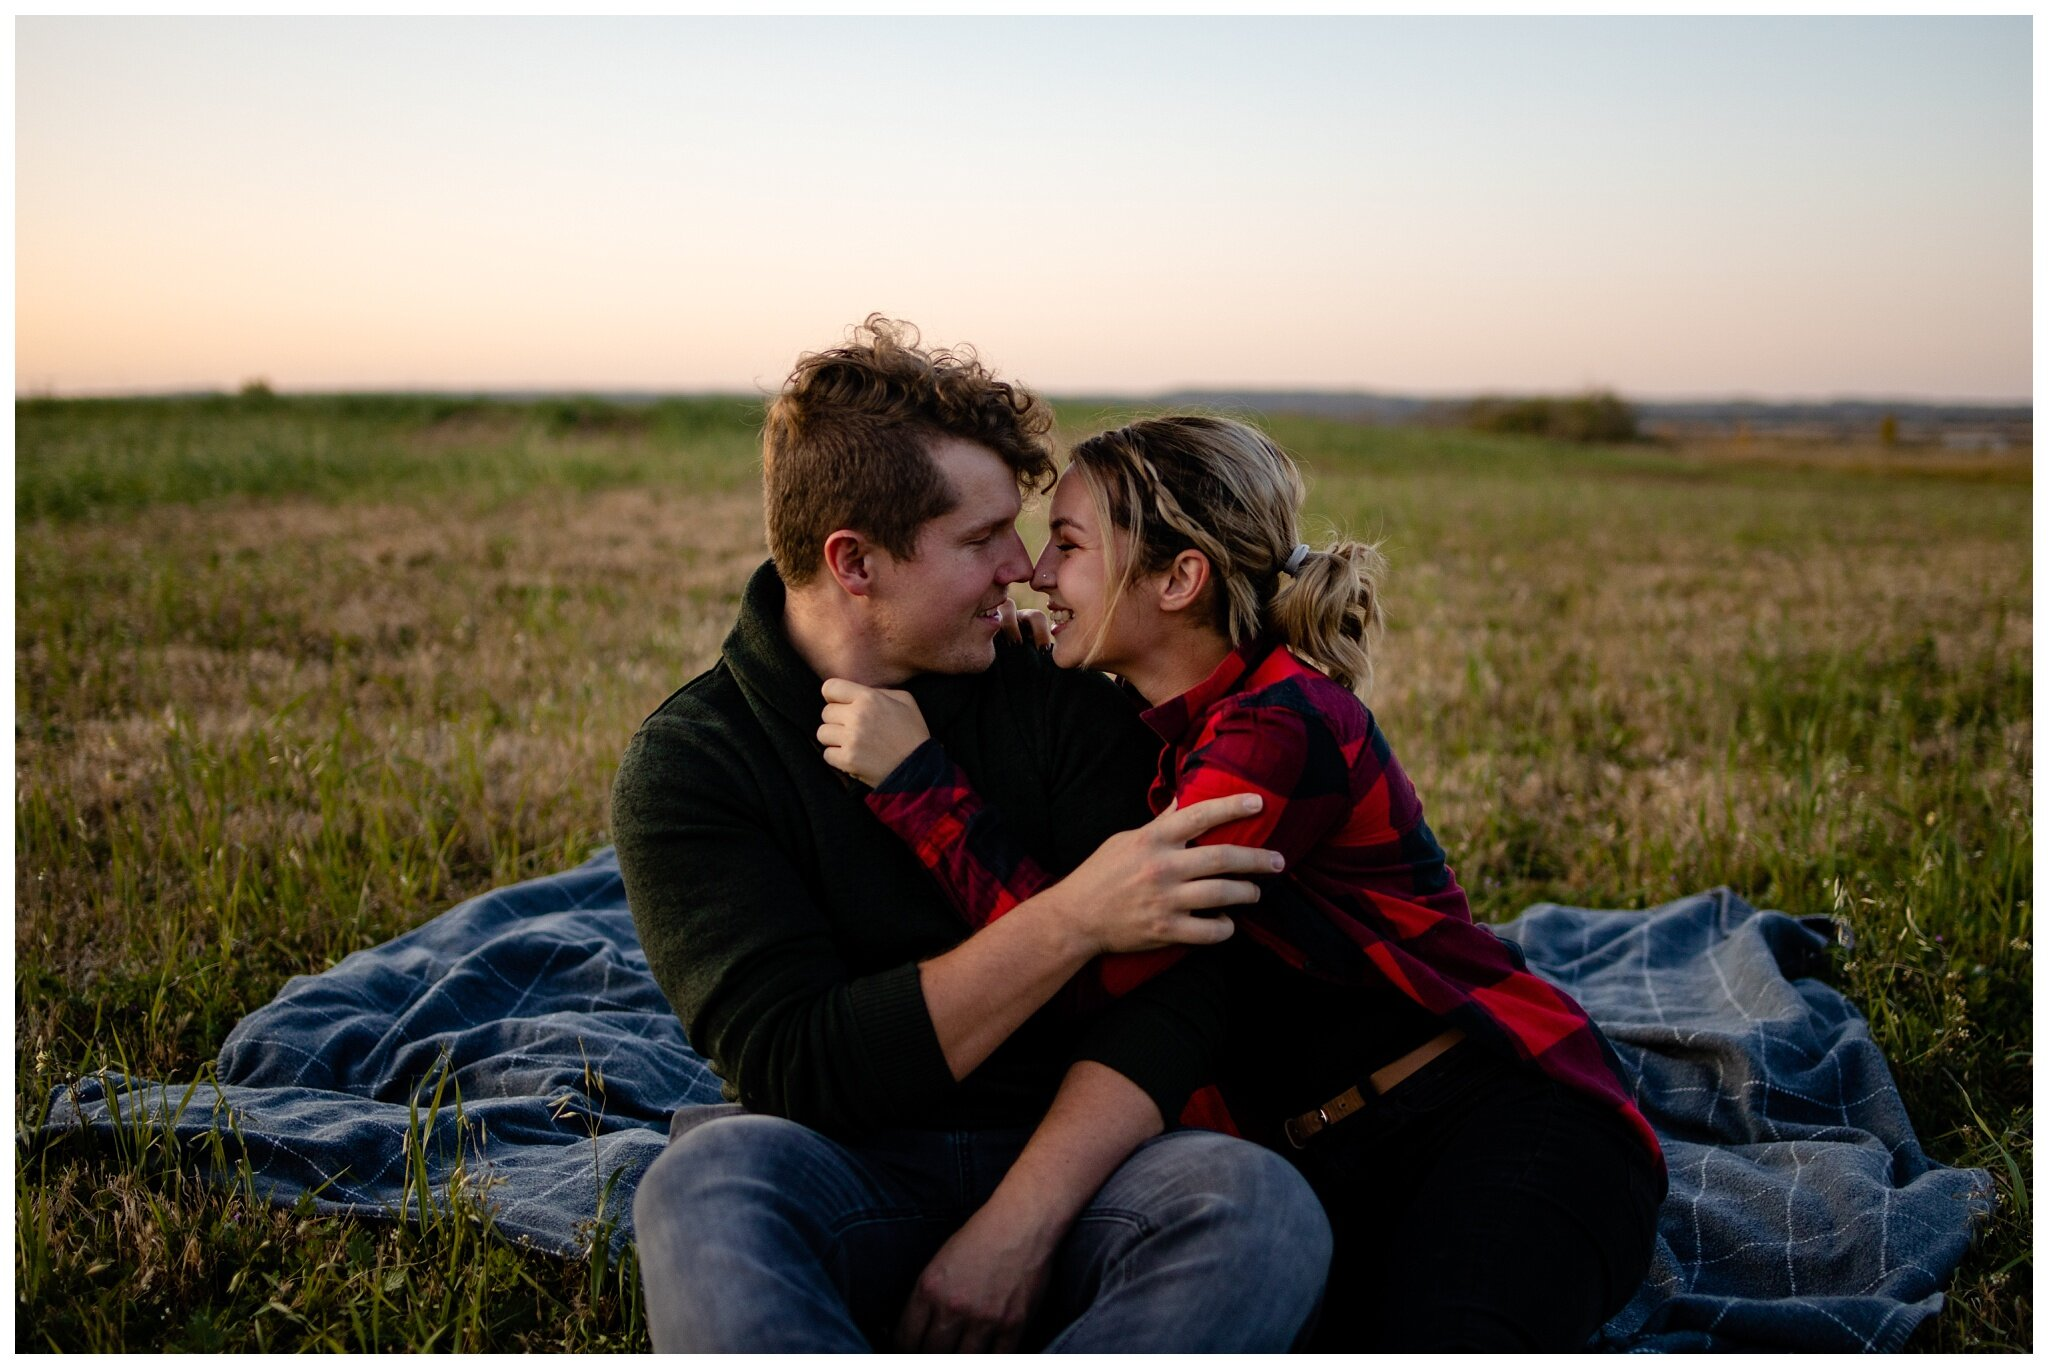 Spruce Grove Engagement Photographer Couples Connection Romantic Photography_0009.jpg